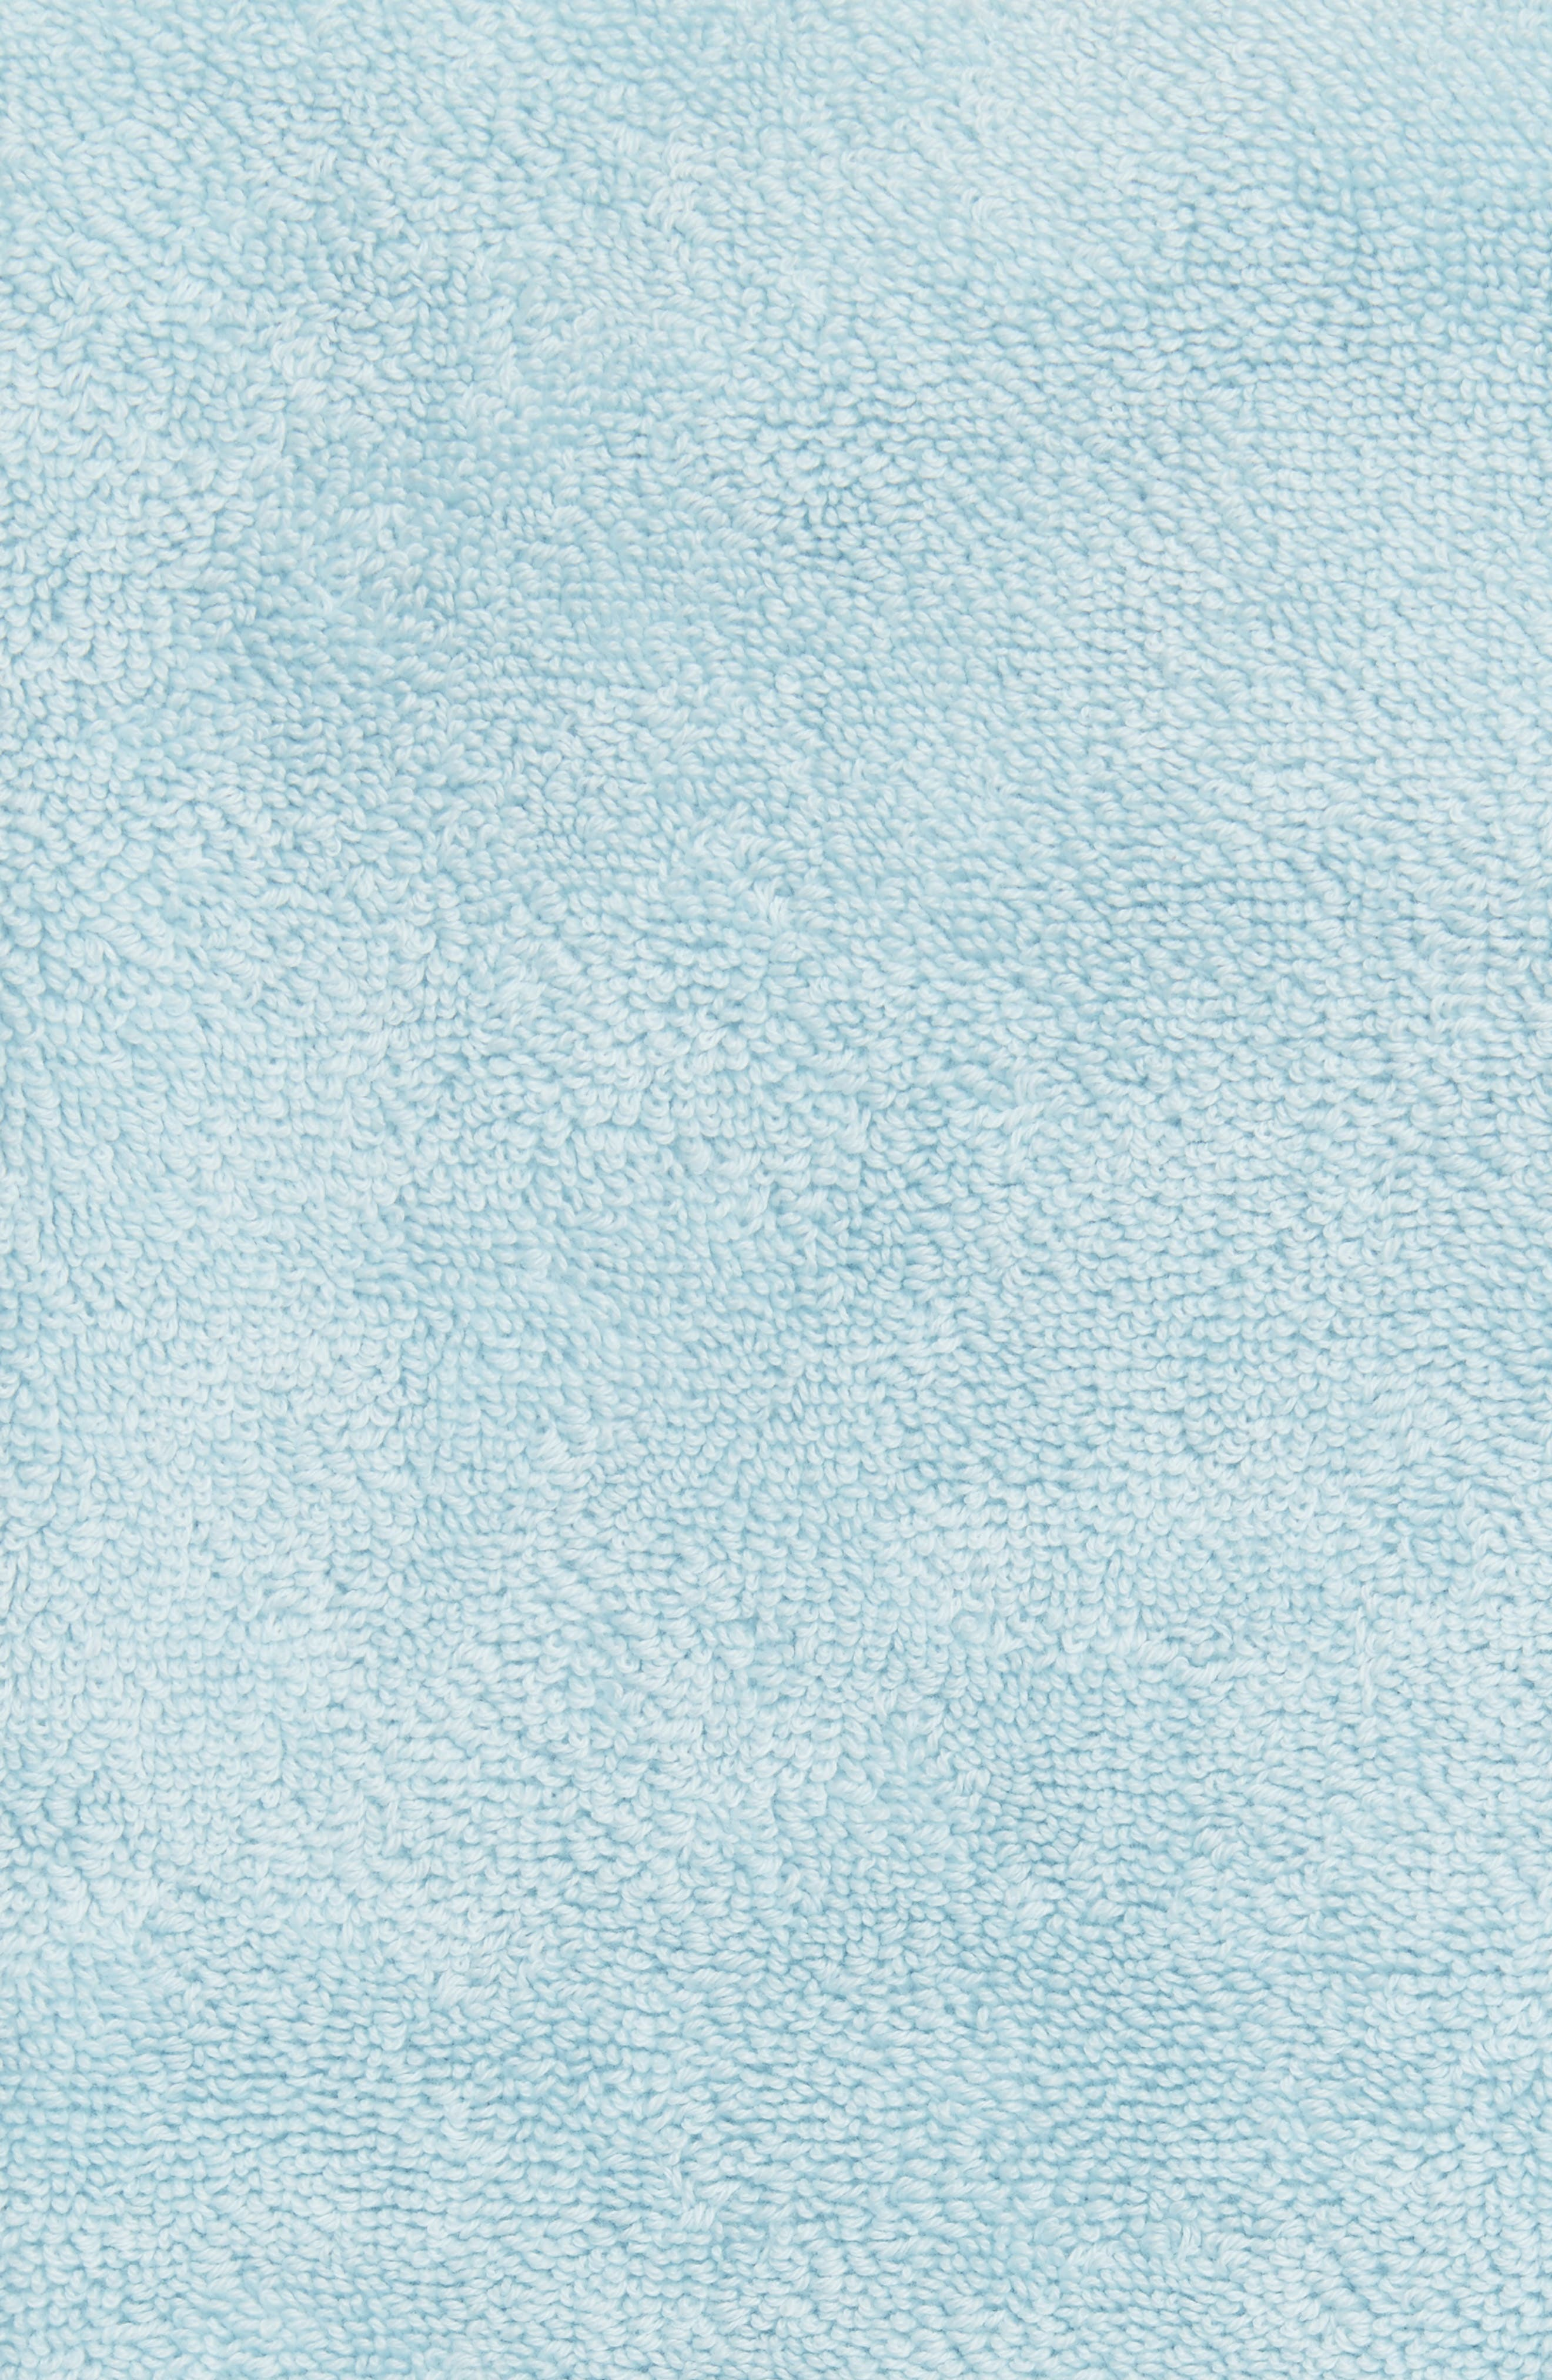 Studio 'Perennial' Combed Turkish Cotton Hand Towel,                             Alternate thumbnail 3, color,                             CHRYSTAL BLUE